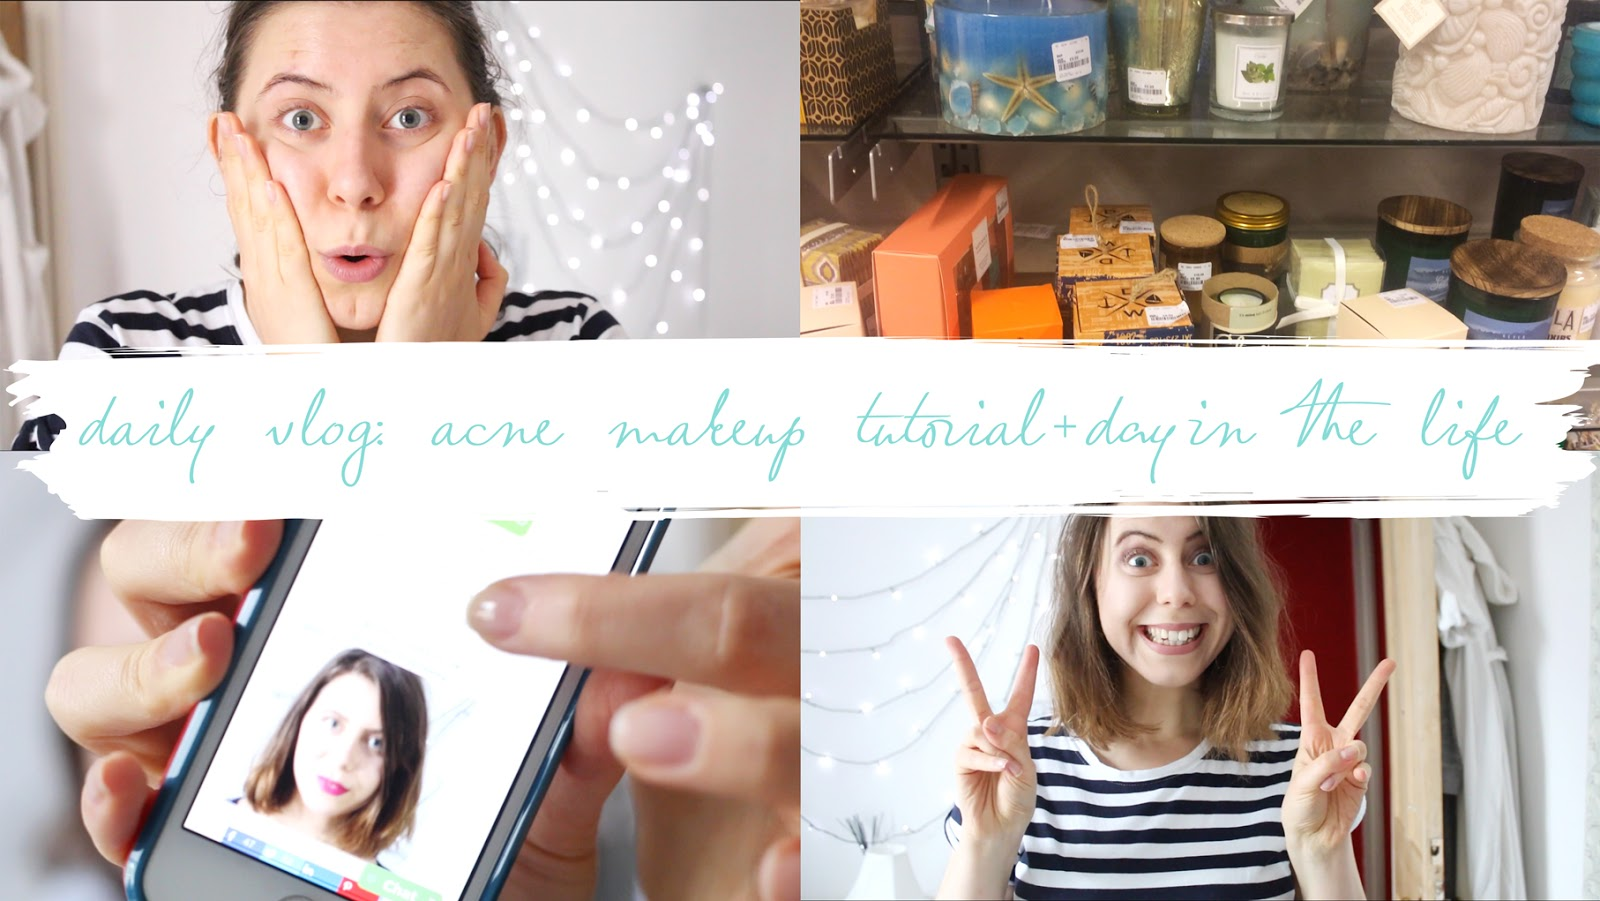 THE VIDEO: DAILY VLOG - ACNE COVERAGE + DAY IN THE LIFE